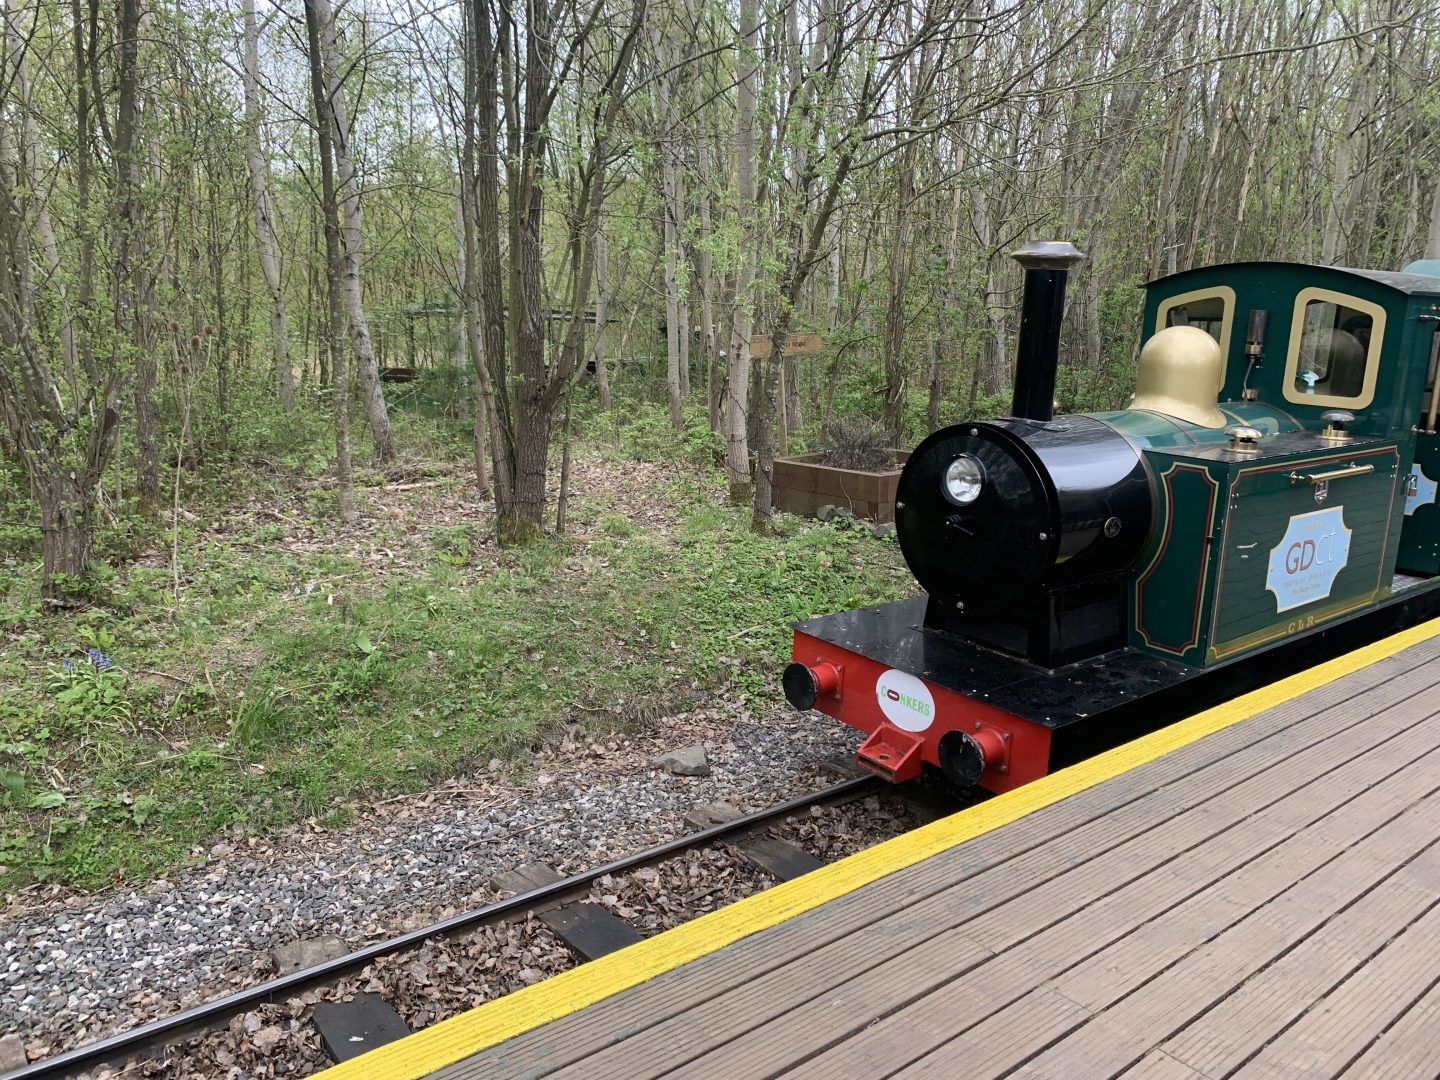 Conkerchoo Train arriving into the station at Conkers